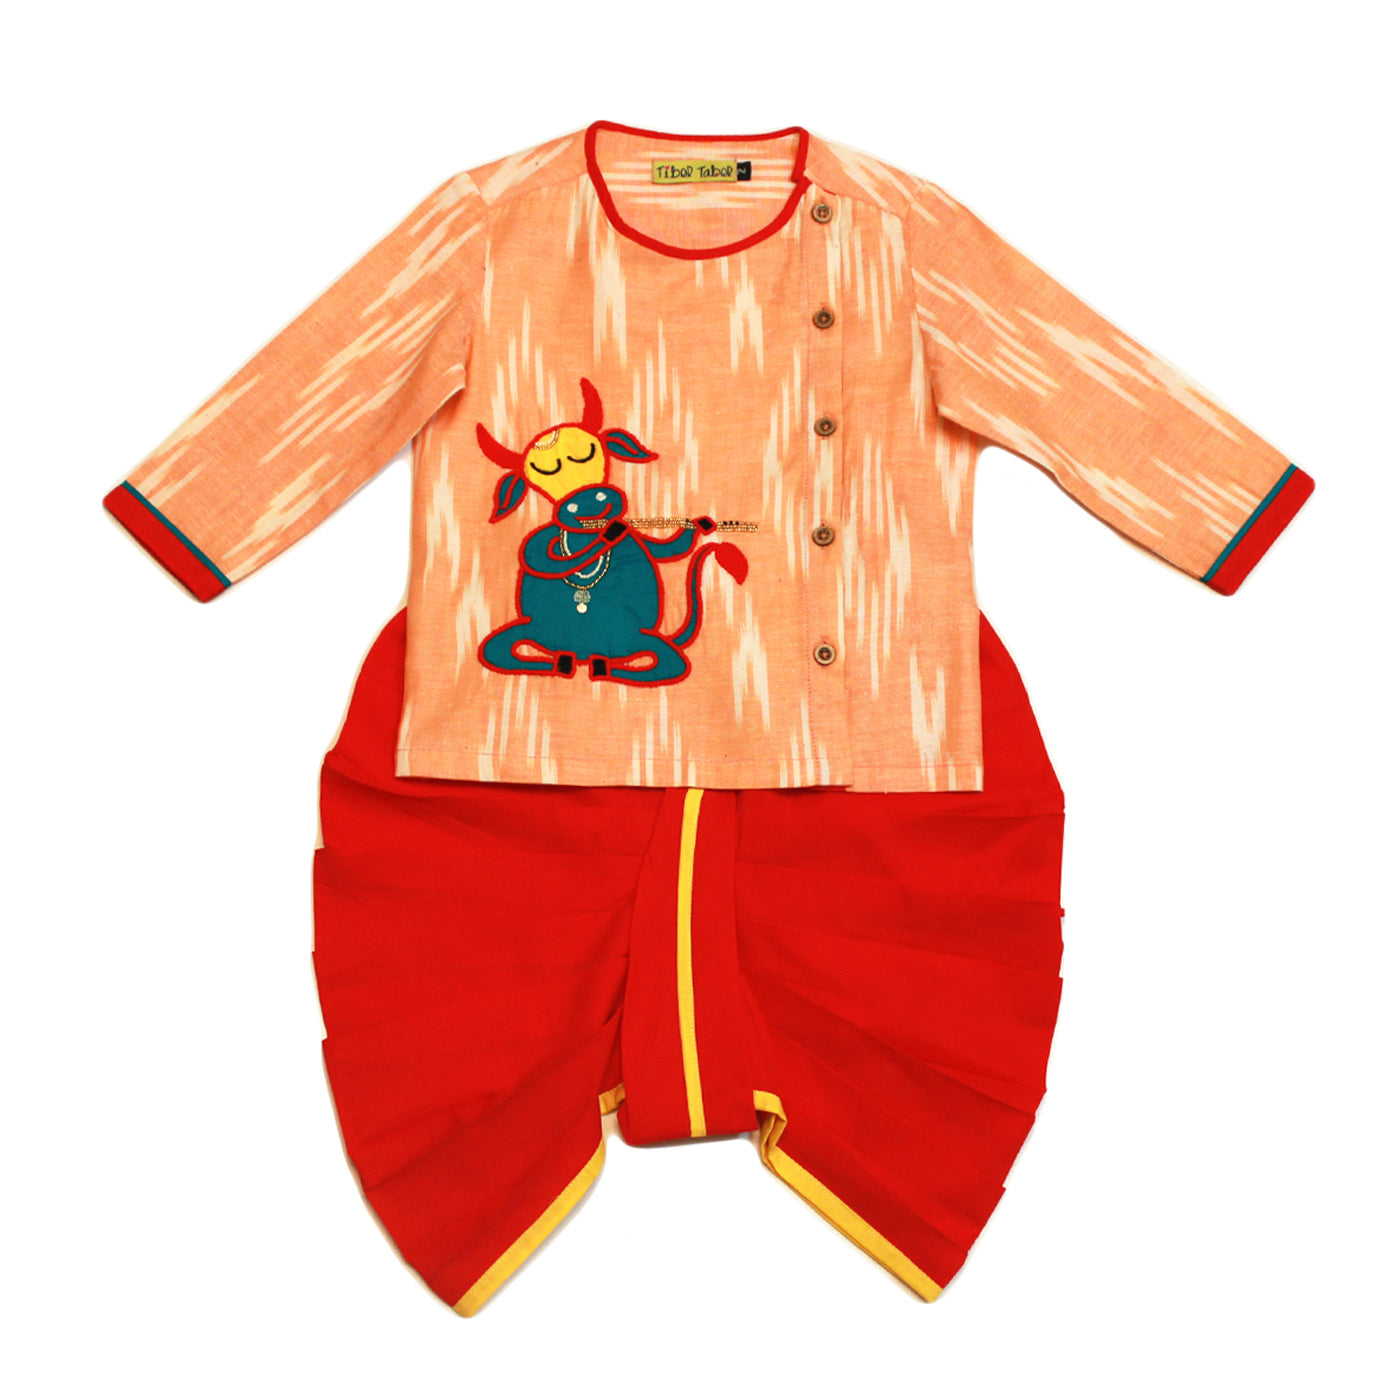 Boy Orange Cow Kurta Dhoti Set